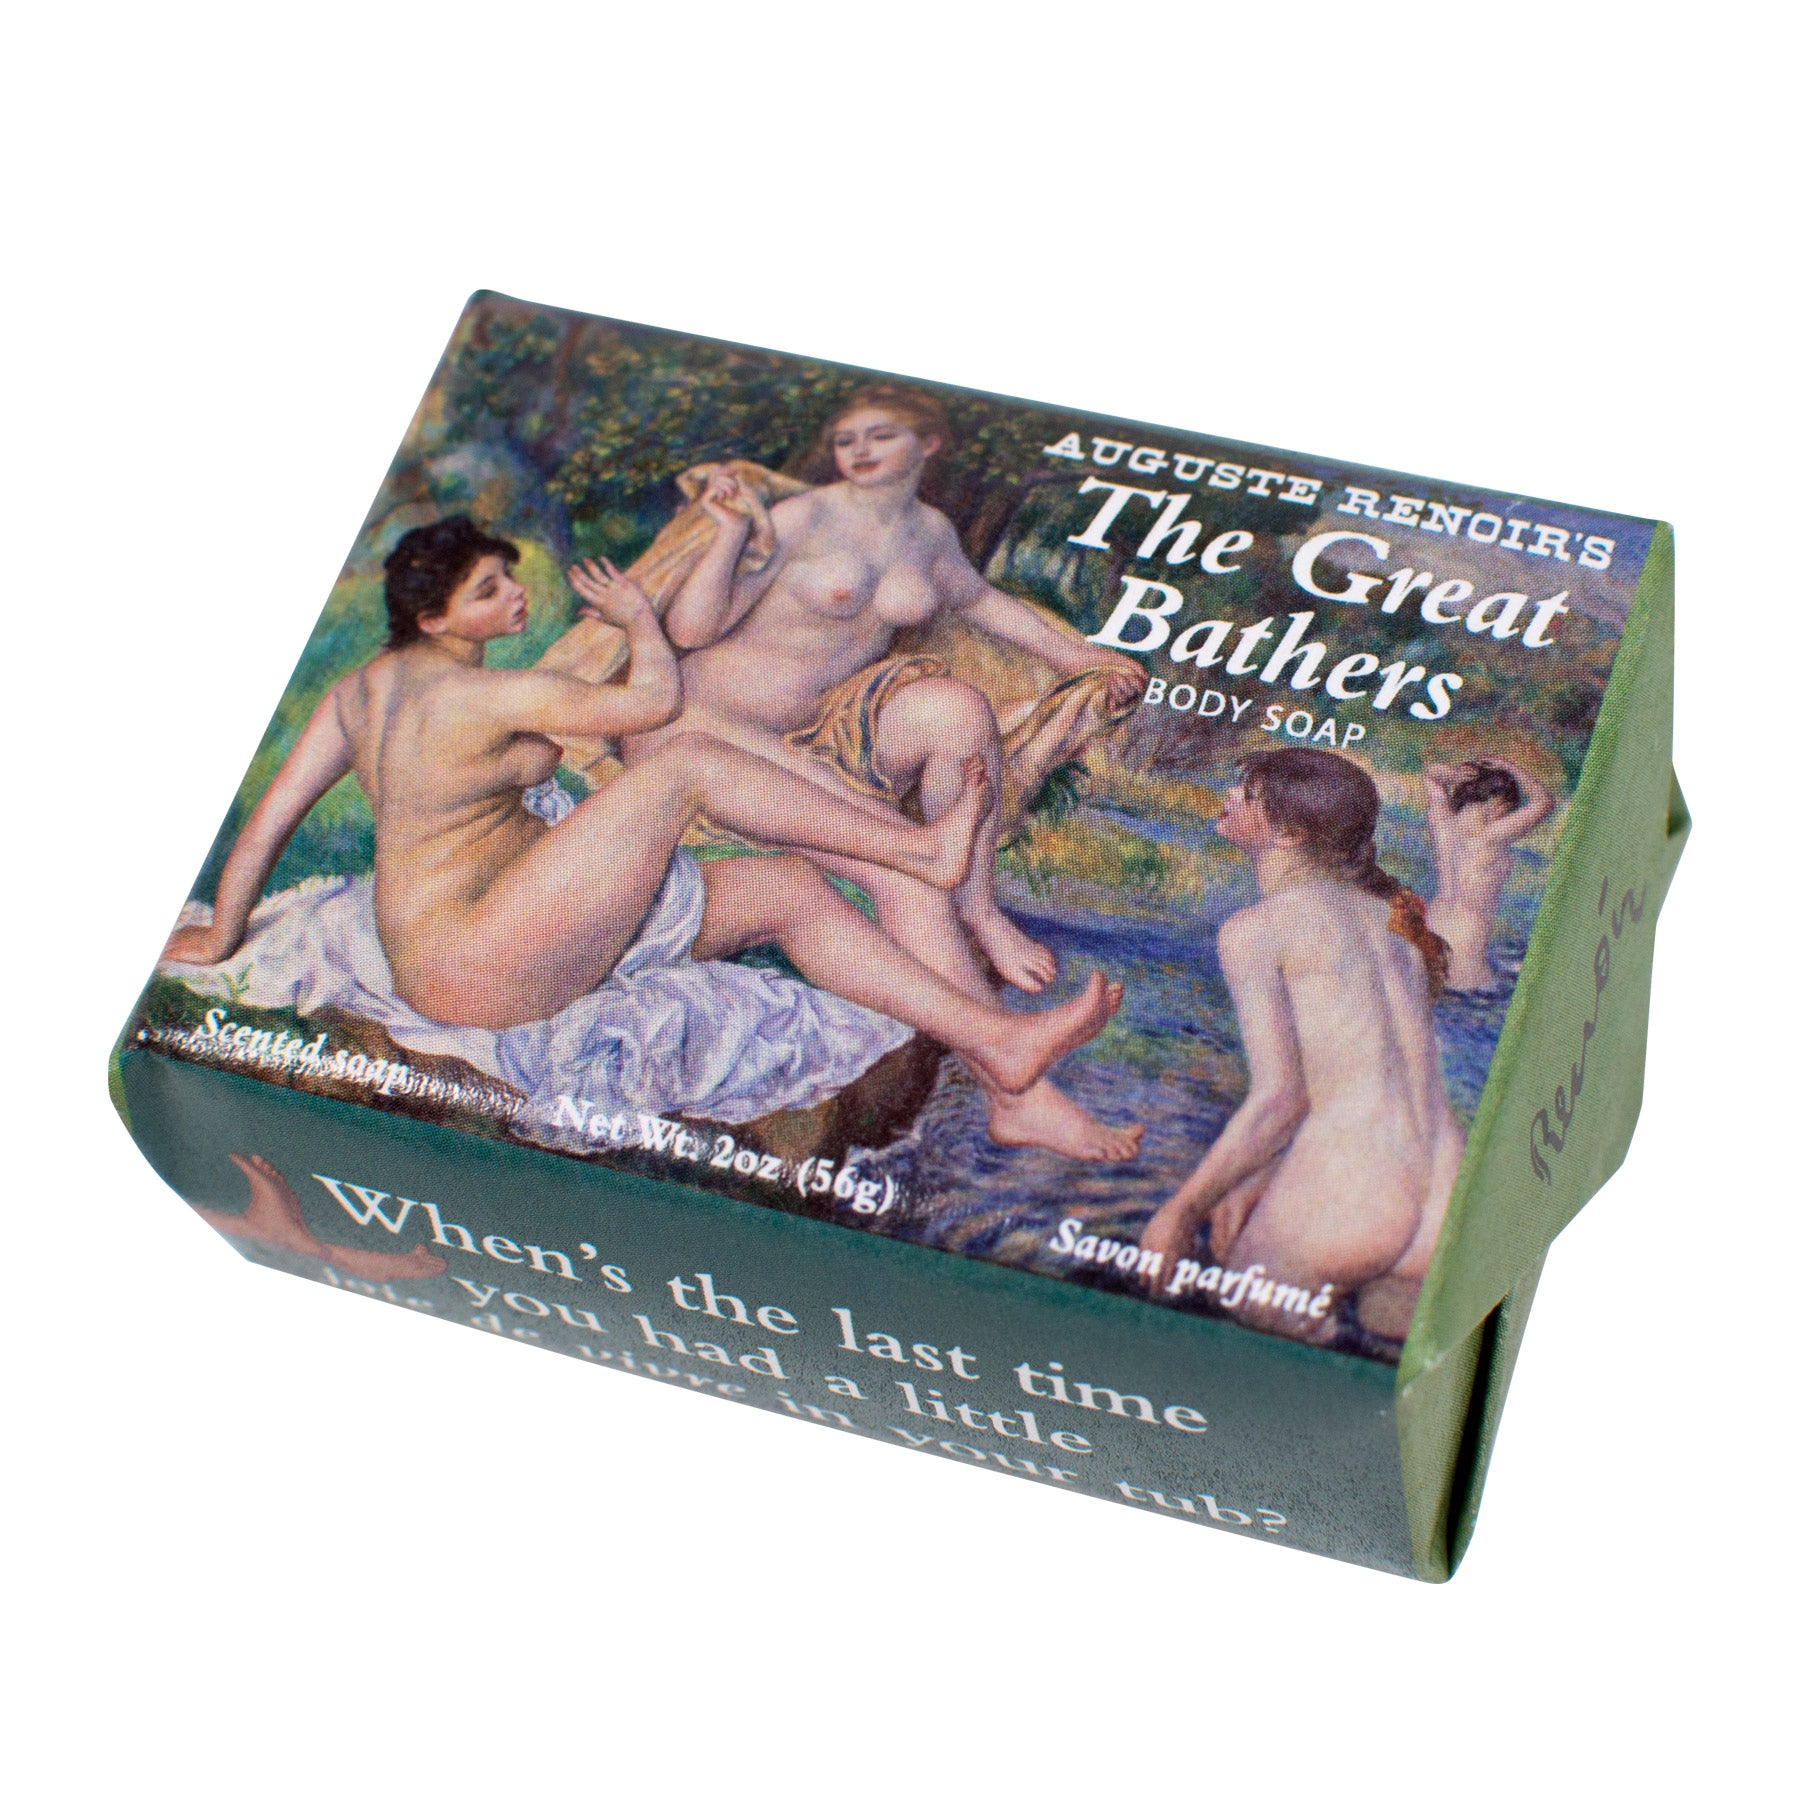 Auguste Renoir's The Great Bathers Body Soap